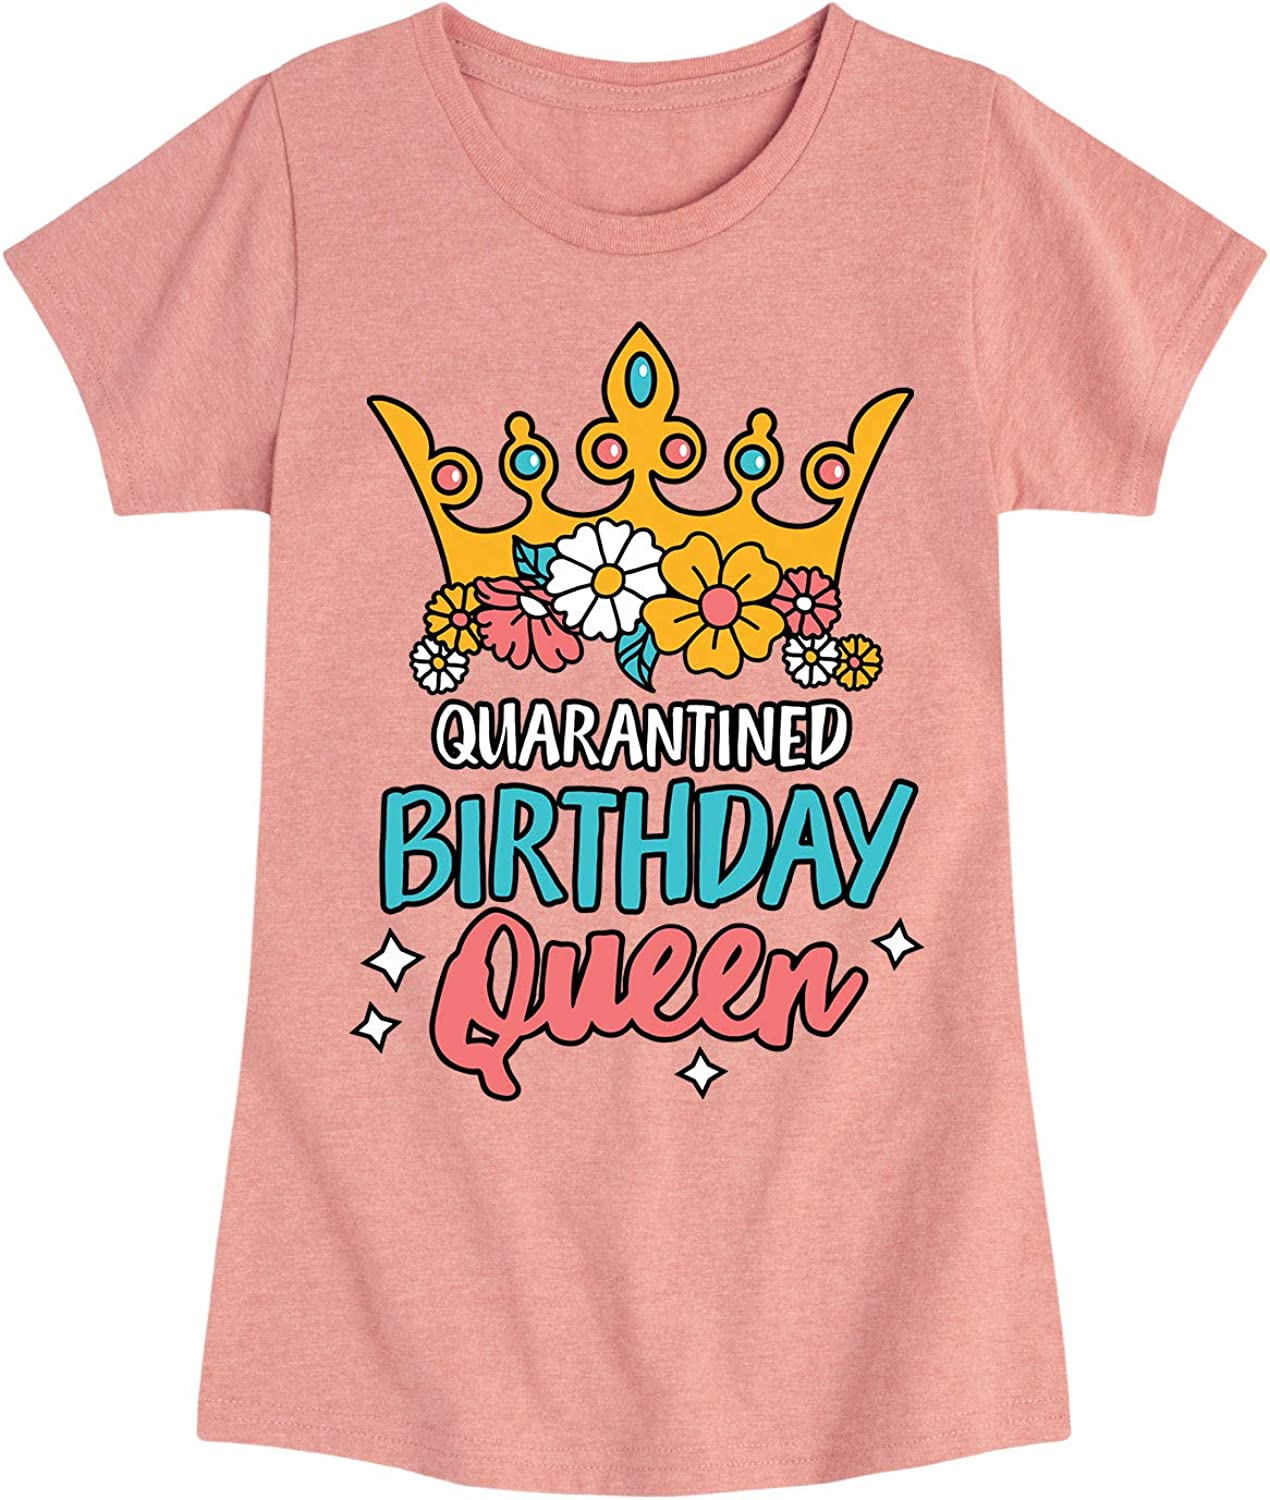 Instant Message Quarantined Birthday Queen - Toddler and Youth Girls Short Sleeve T-Shirts